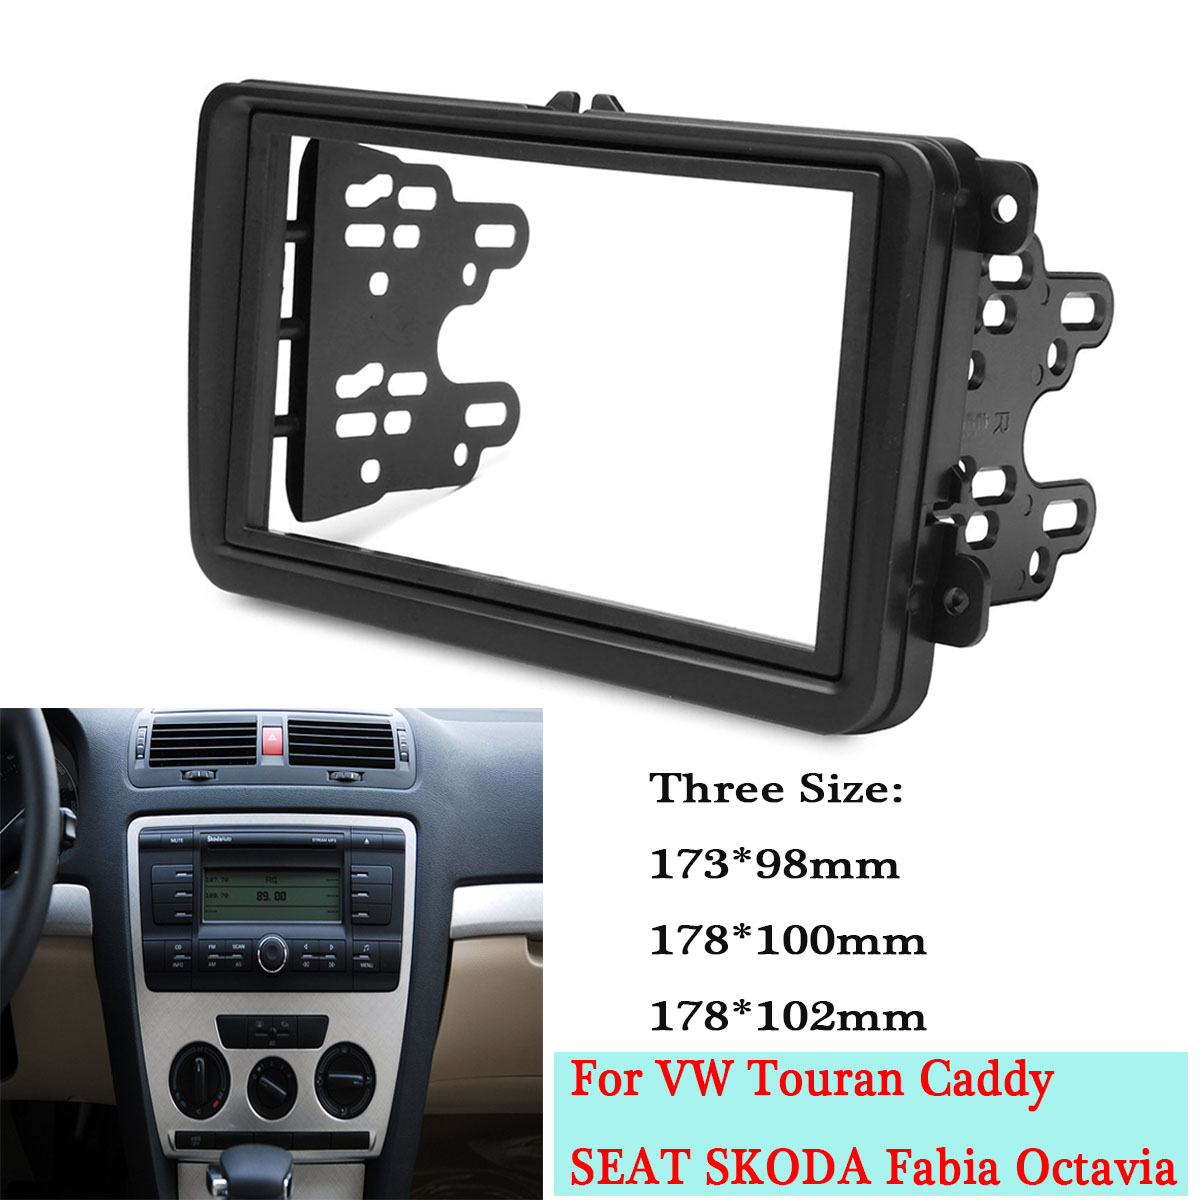 Car Double Din Frame Fascia Panel Adapter Kit Dvd Dash Trim For Radio Wiring Stereo Fitting Volkswagen Vw Touran Caddy Seat Skoda Fabia Octavia In Fascias From Automobiles